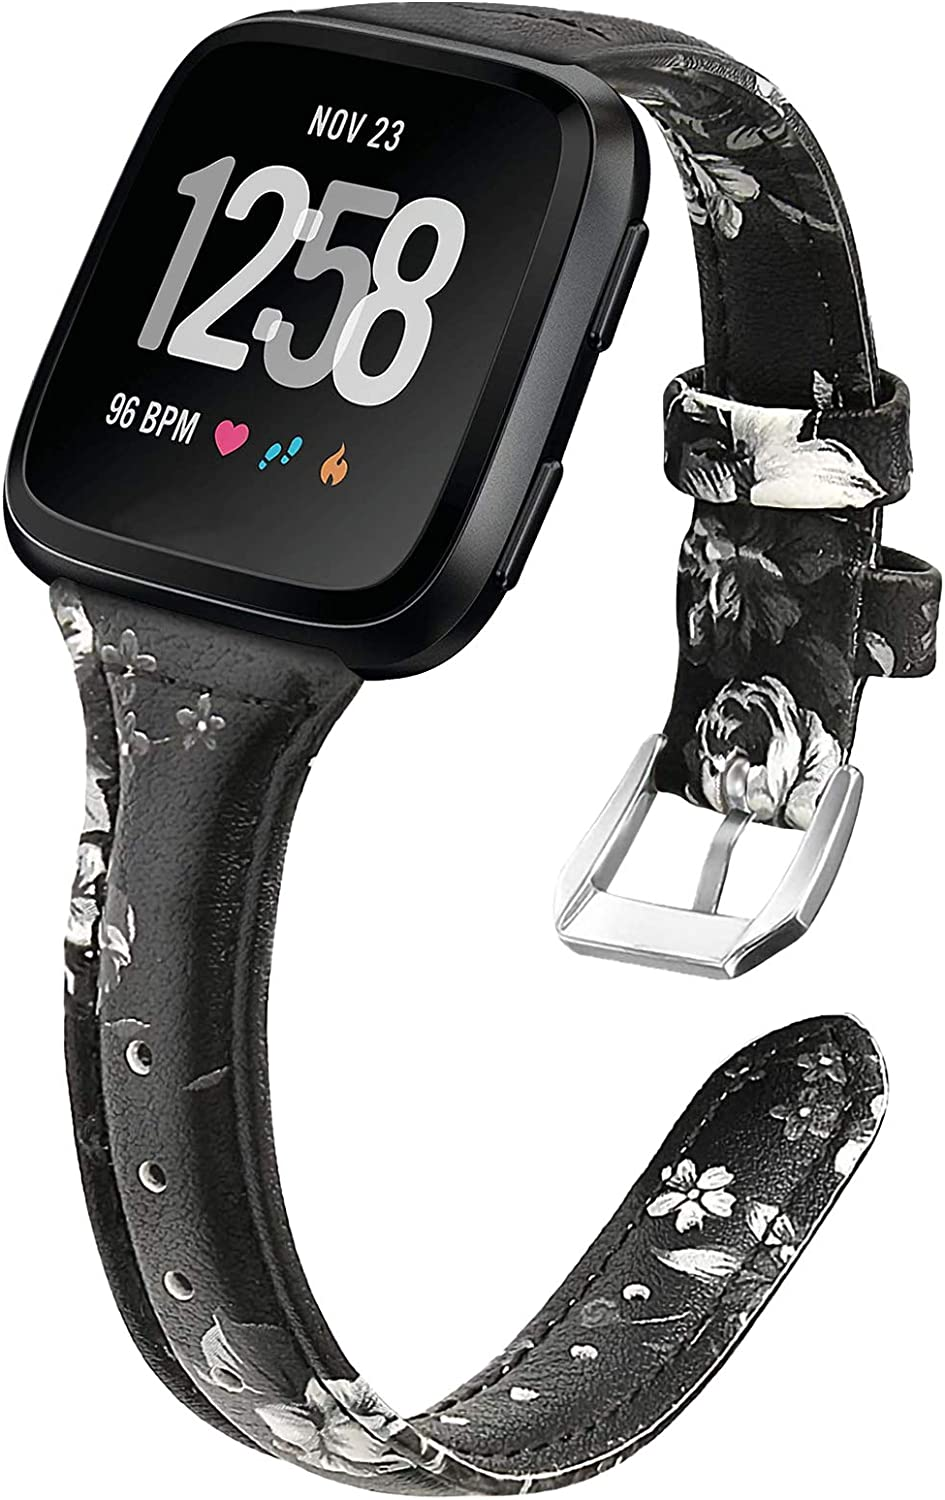 Max 90% OFF EZCO Leather Bands Compatible Versa with 2 Fitbit Max 40% OFF